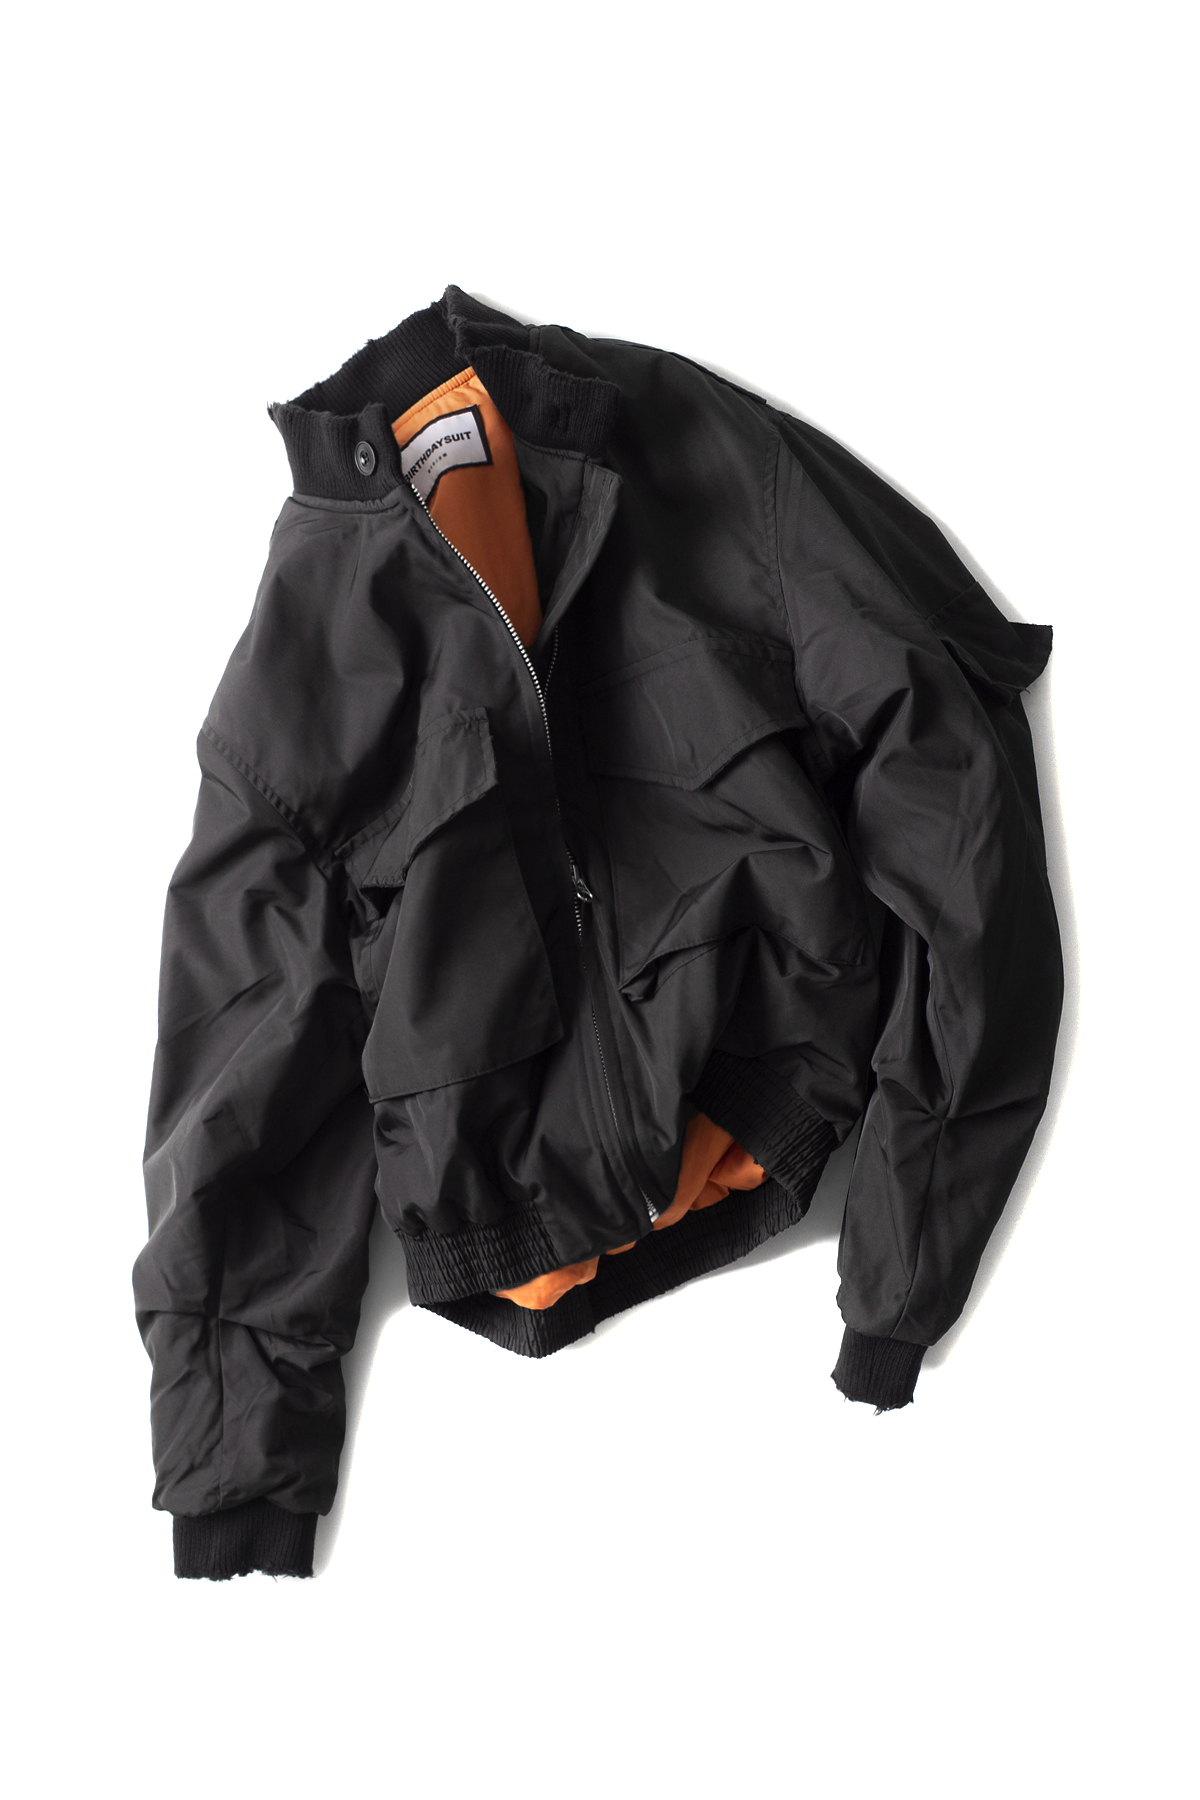 BIRTHDAYSUIT : G-8 Flight Jacket (Black)